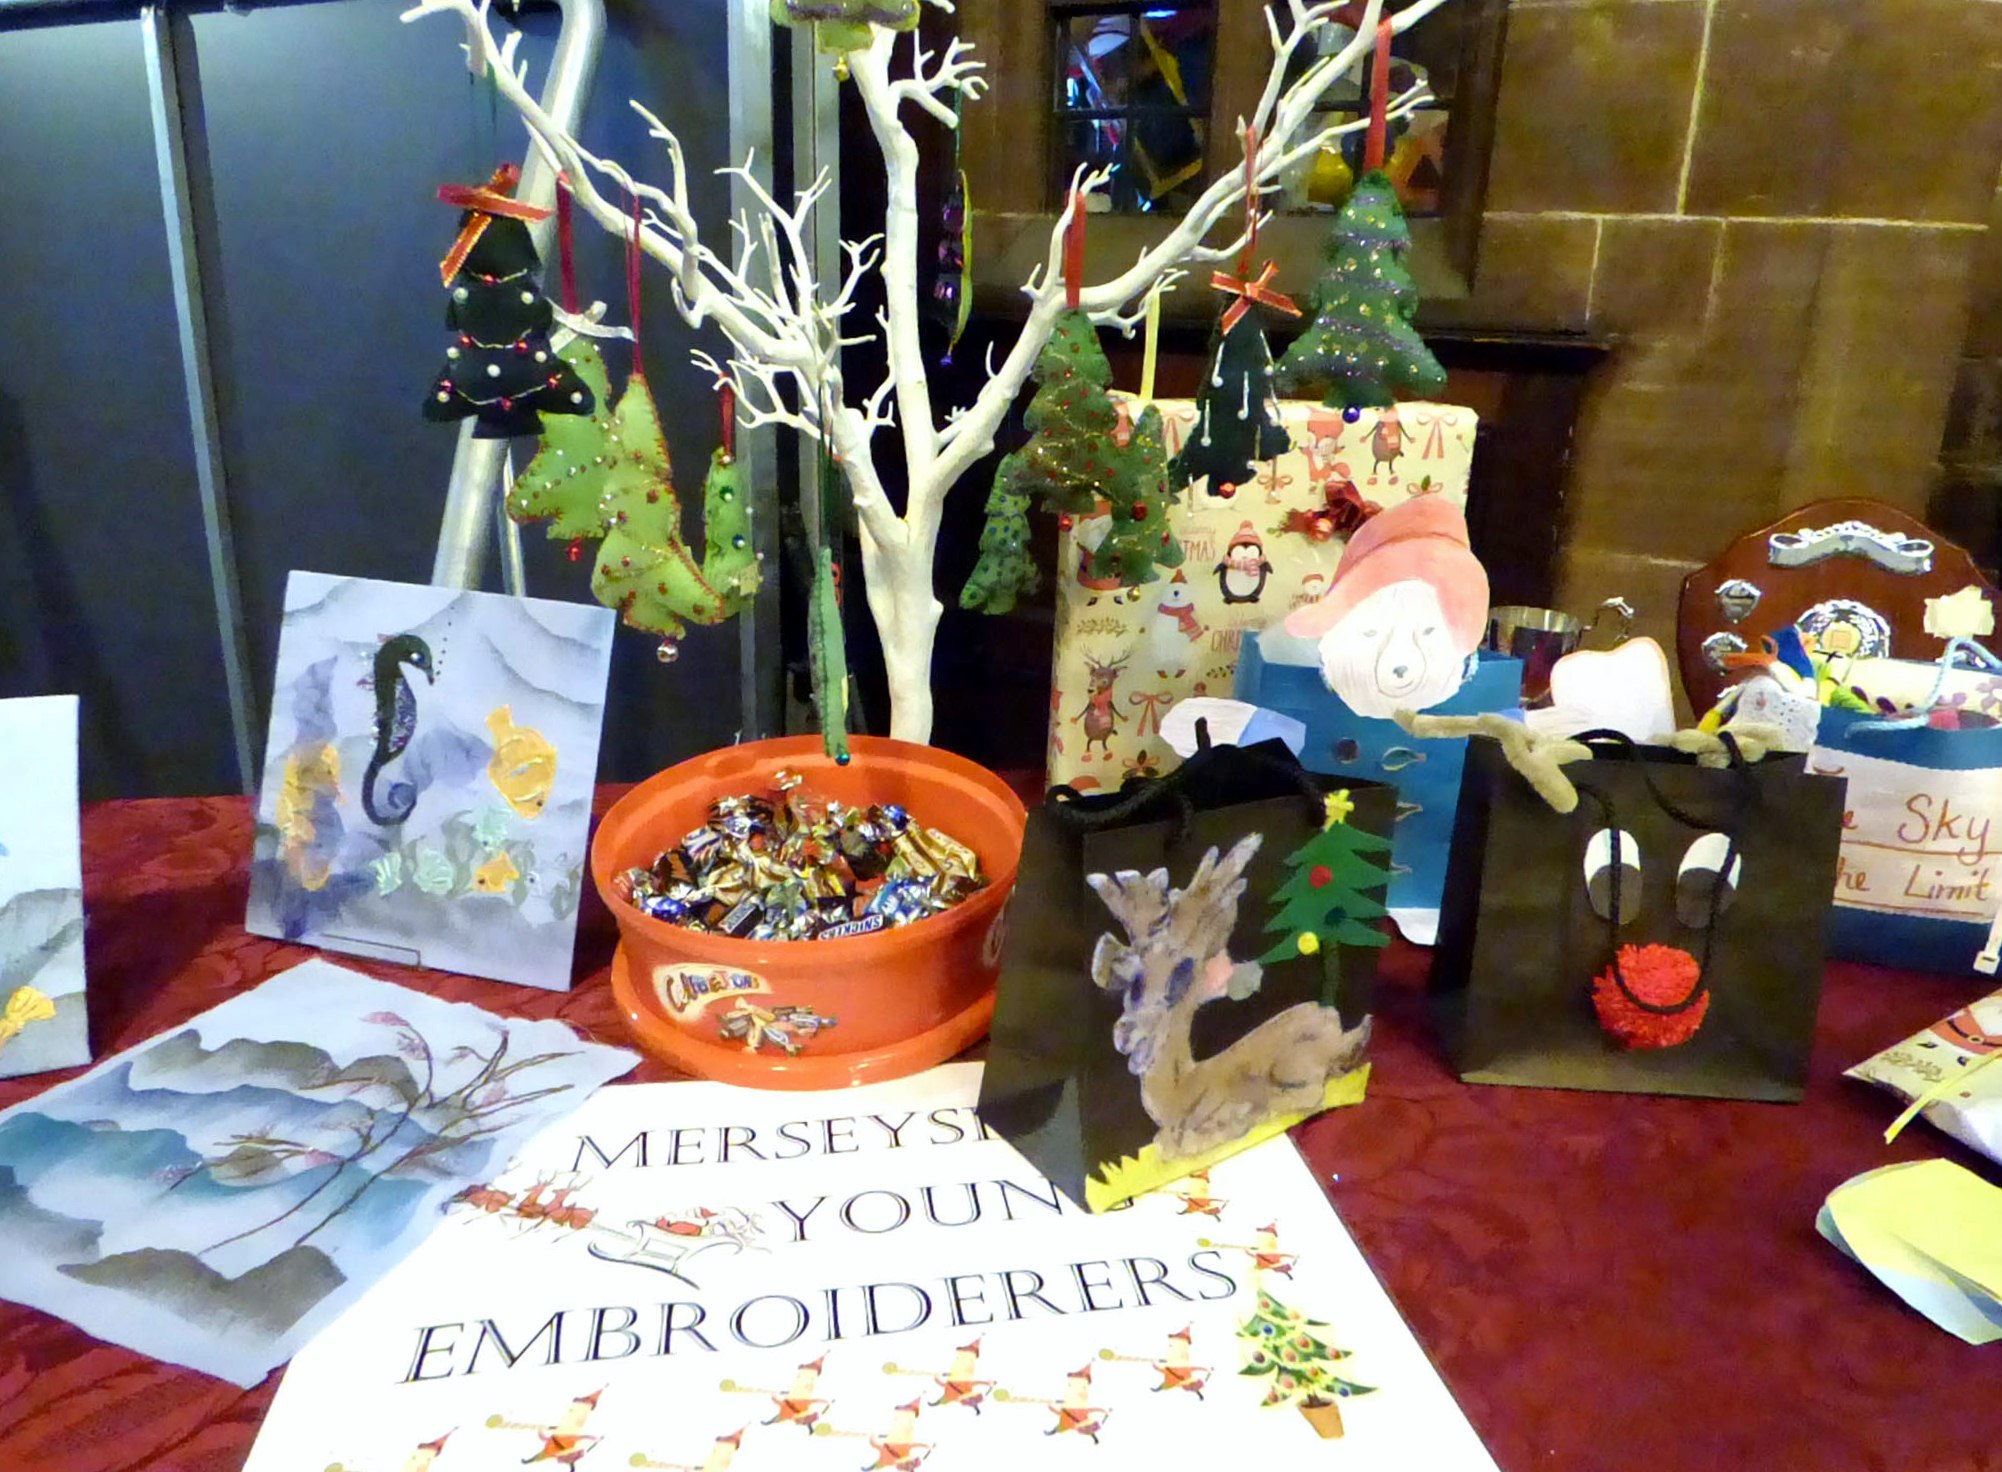 display of work by Merseyside Young Embroiderers at MEG Christmas Party 2017